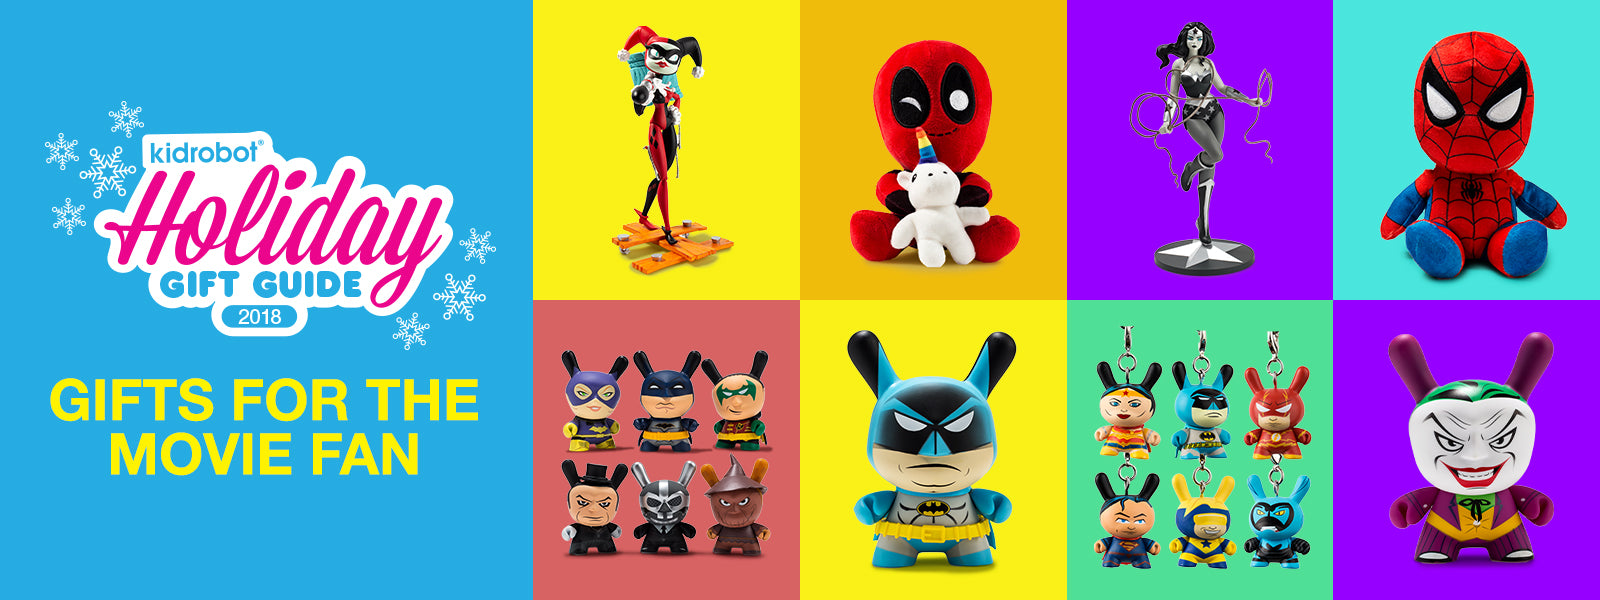 Kidrobot Gift Guide 2018: Gifts for the Movie Fan